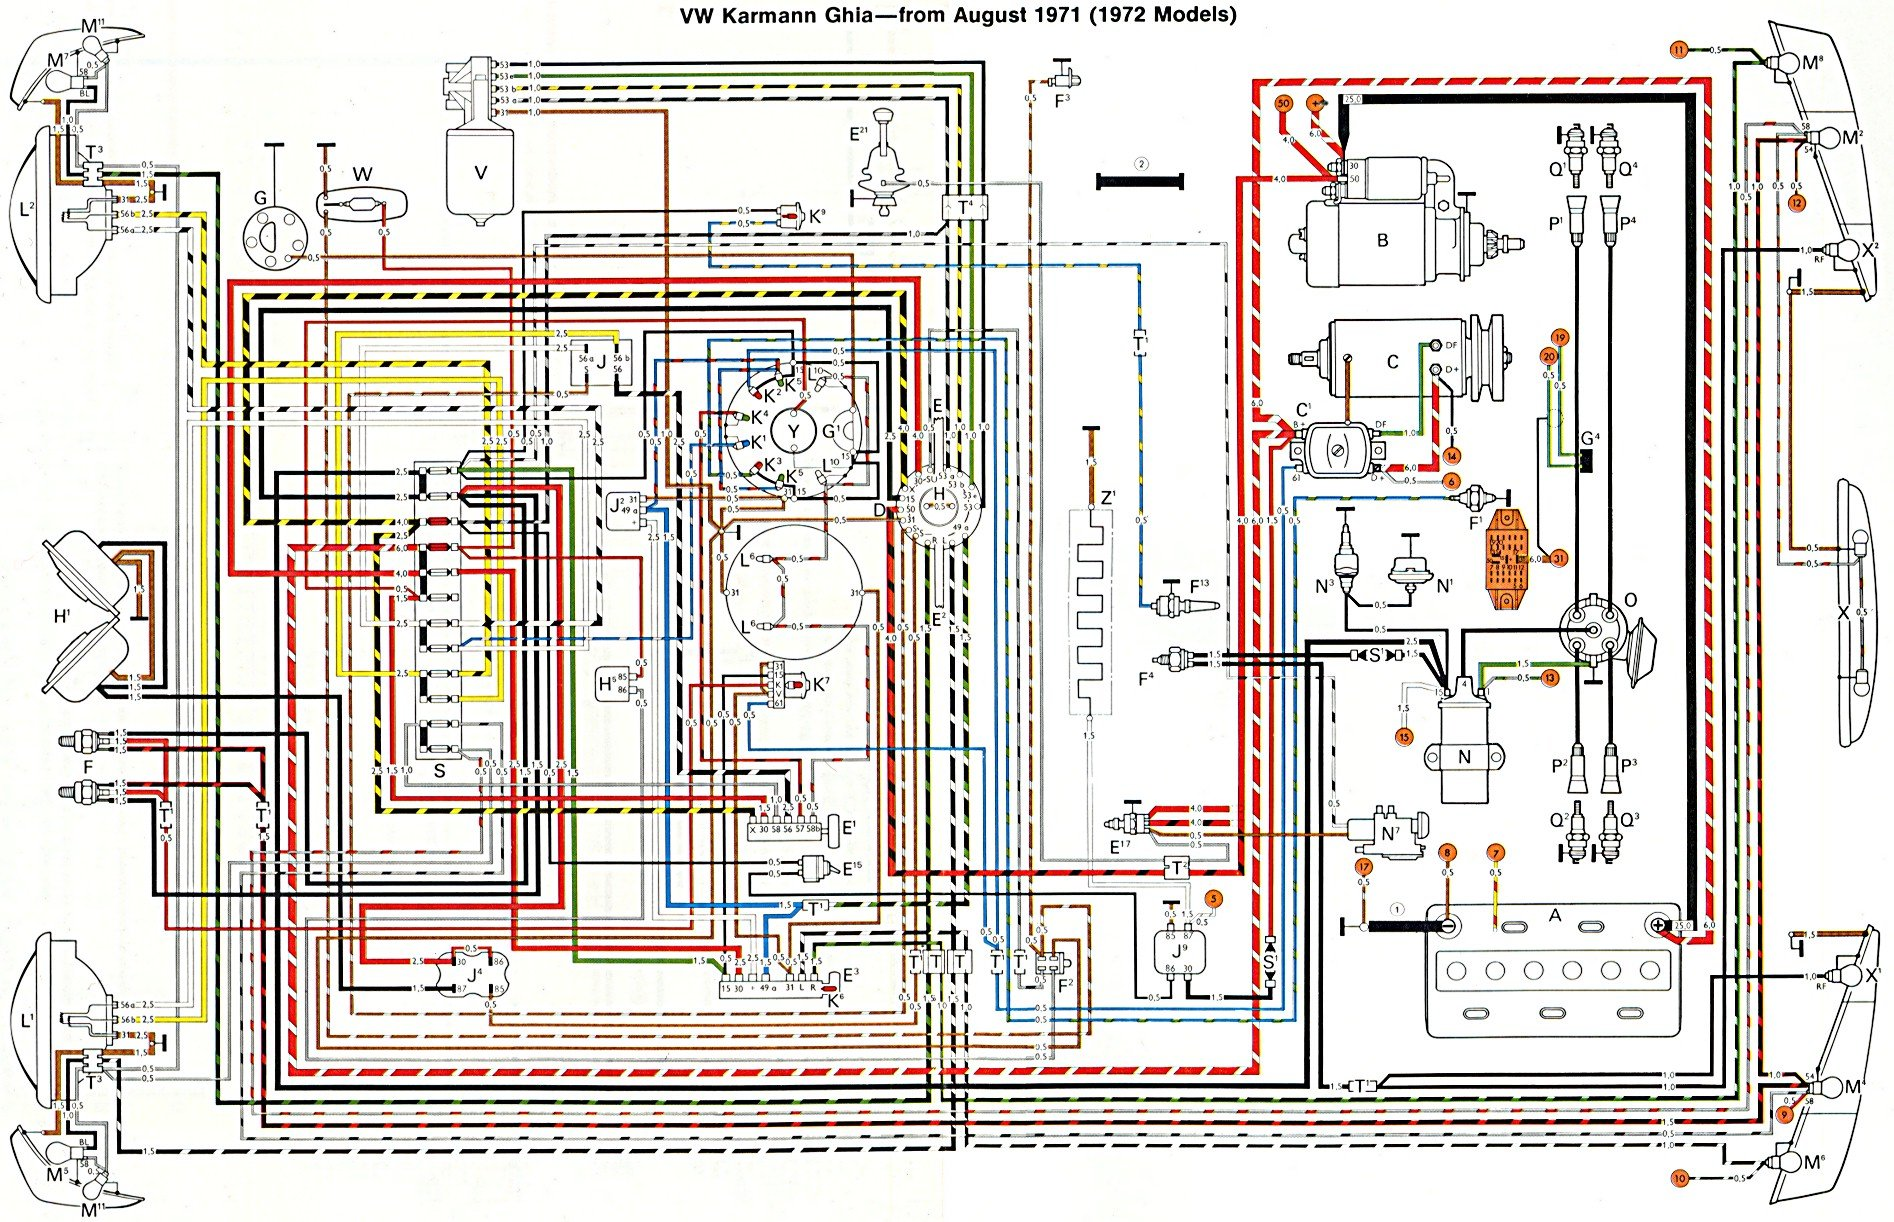 72ghia 1971 karmann ghia wiring diagram karmann ghia wiring harness Wiring Harness Diagram at mifinder.co